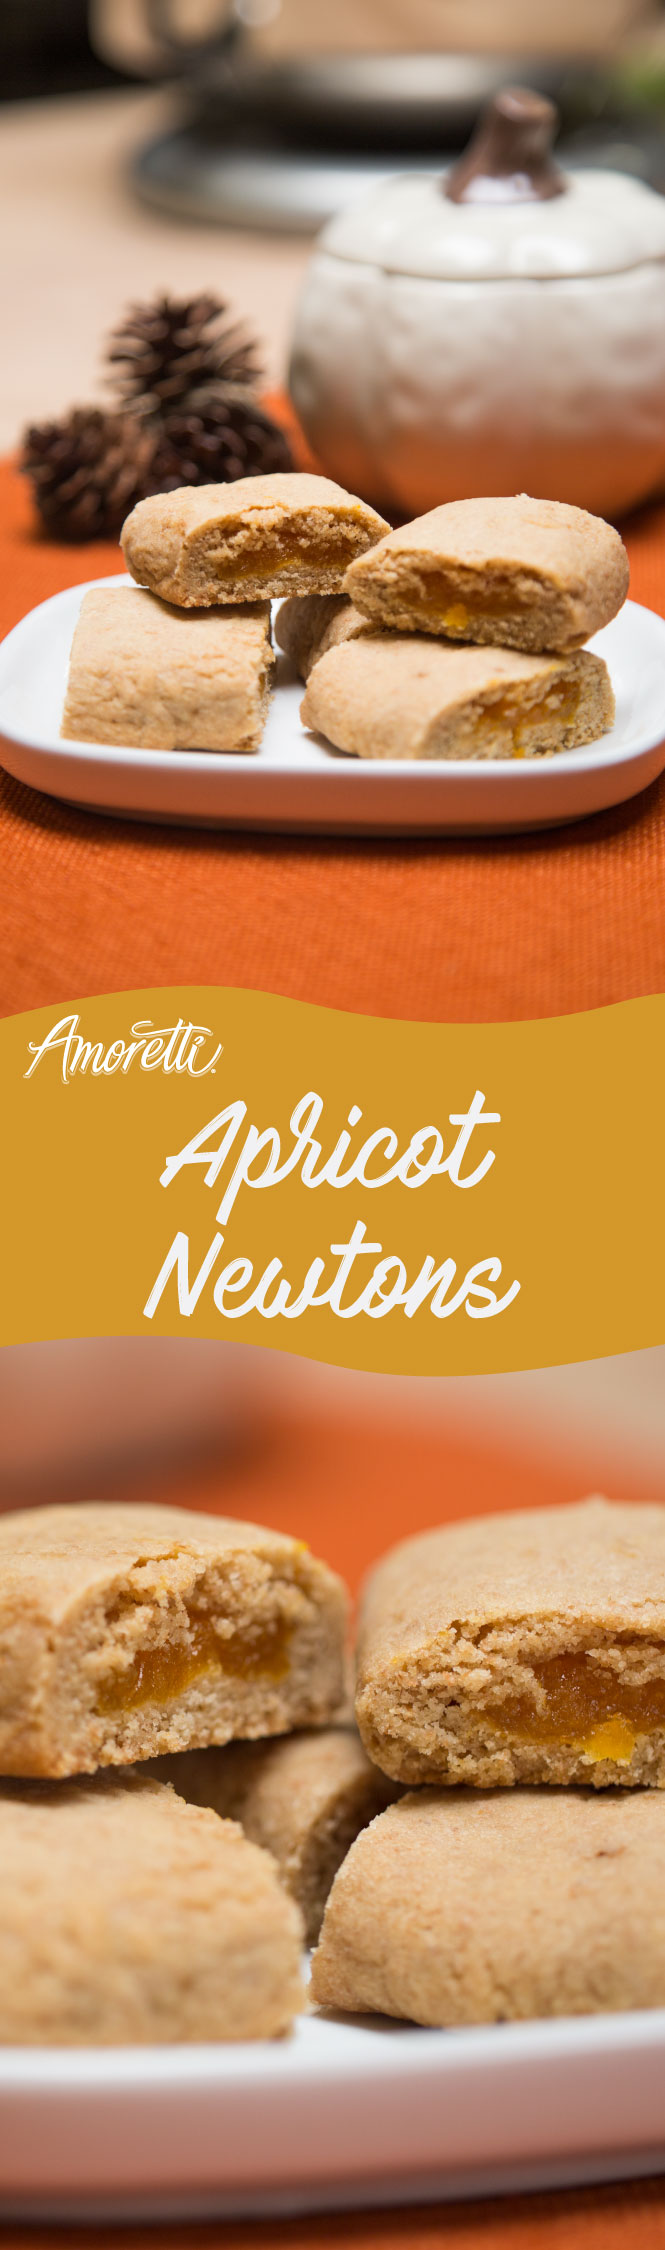 Amoretti Apricot Newtons: Packed with apricot flavor and so tender and chewy!